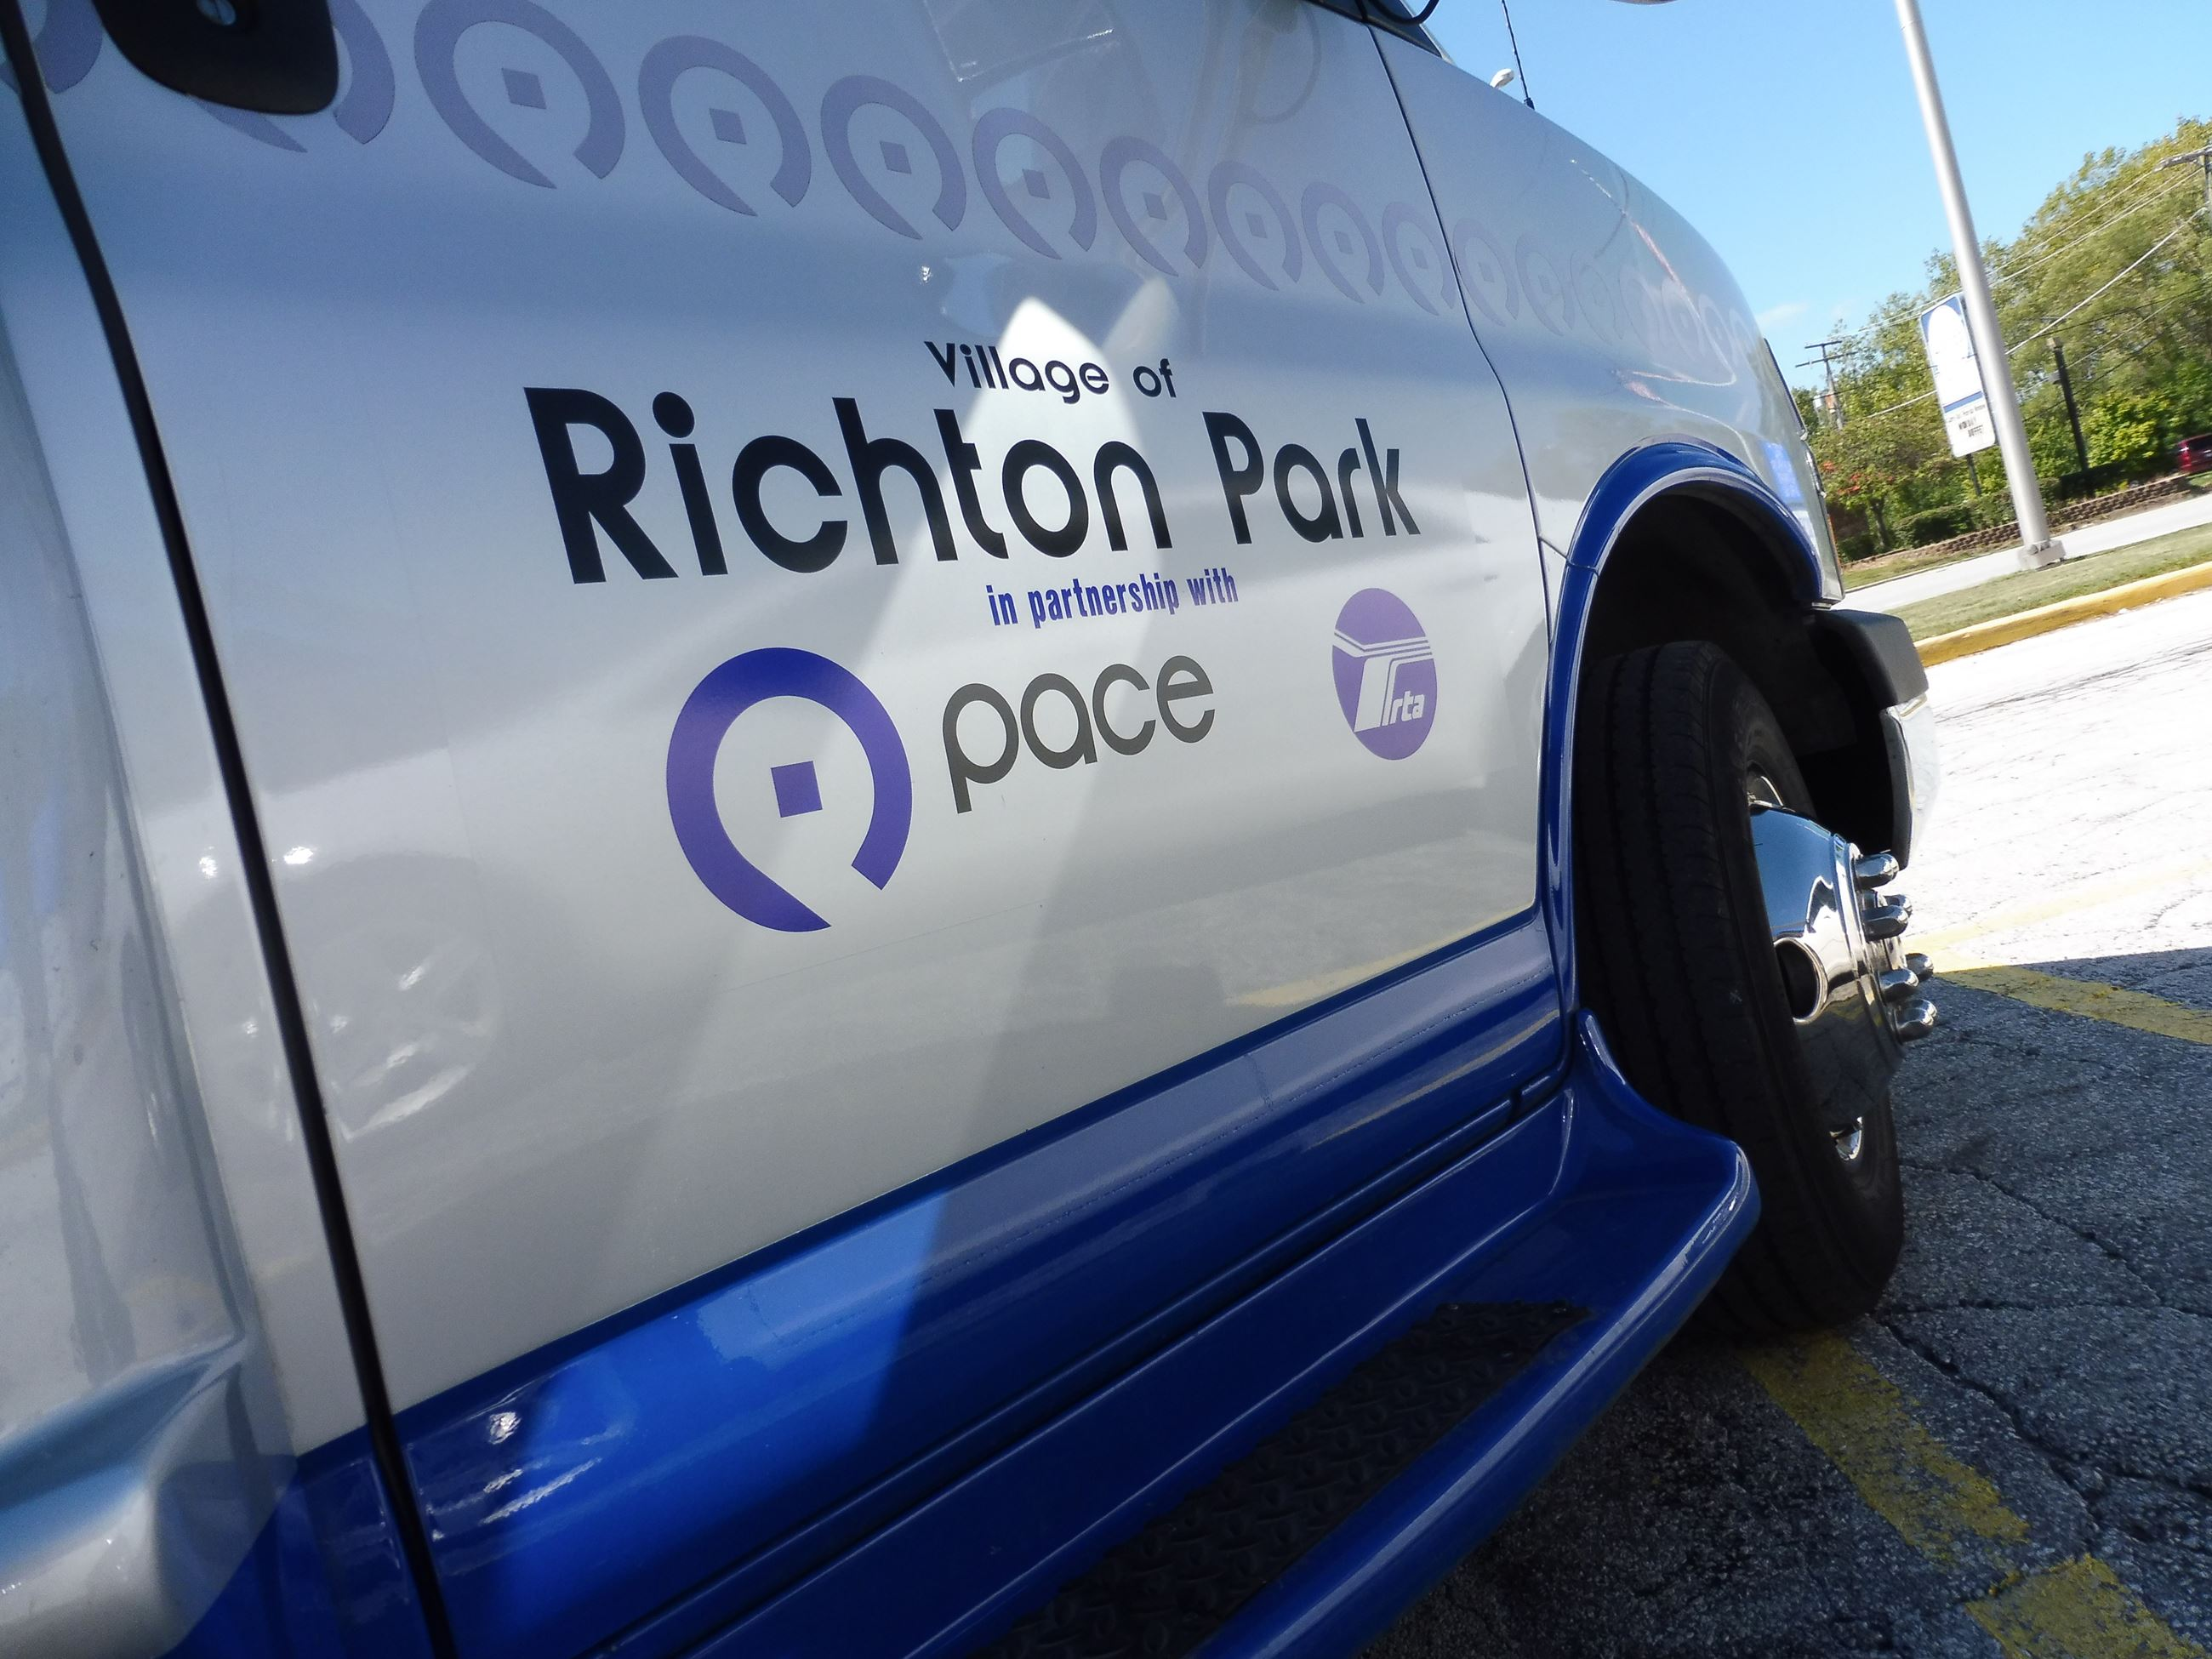 Richton Park Pace Bus - Closeup at angle